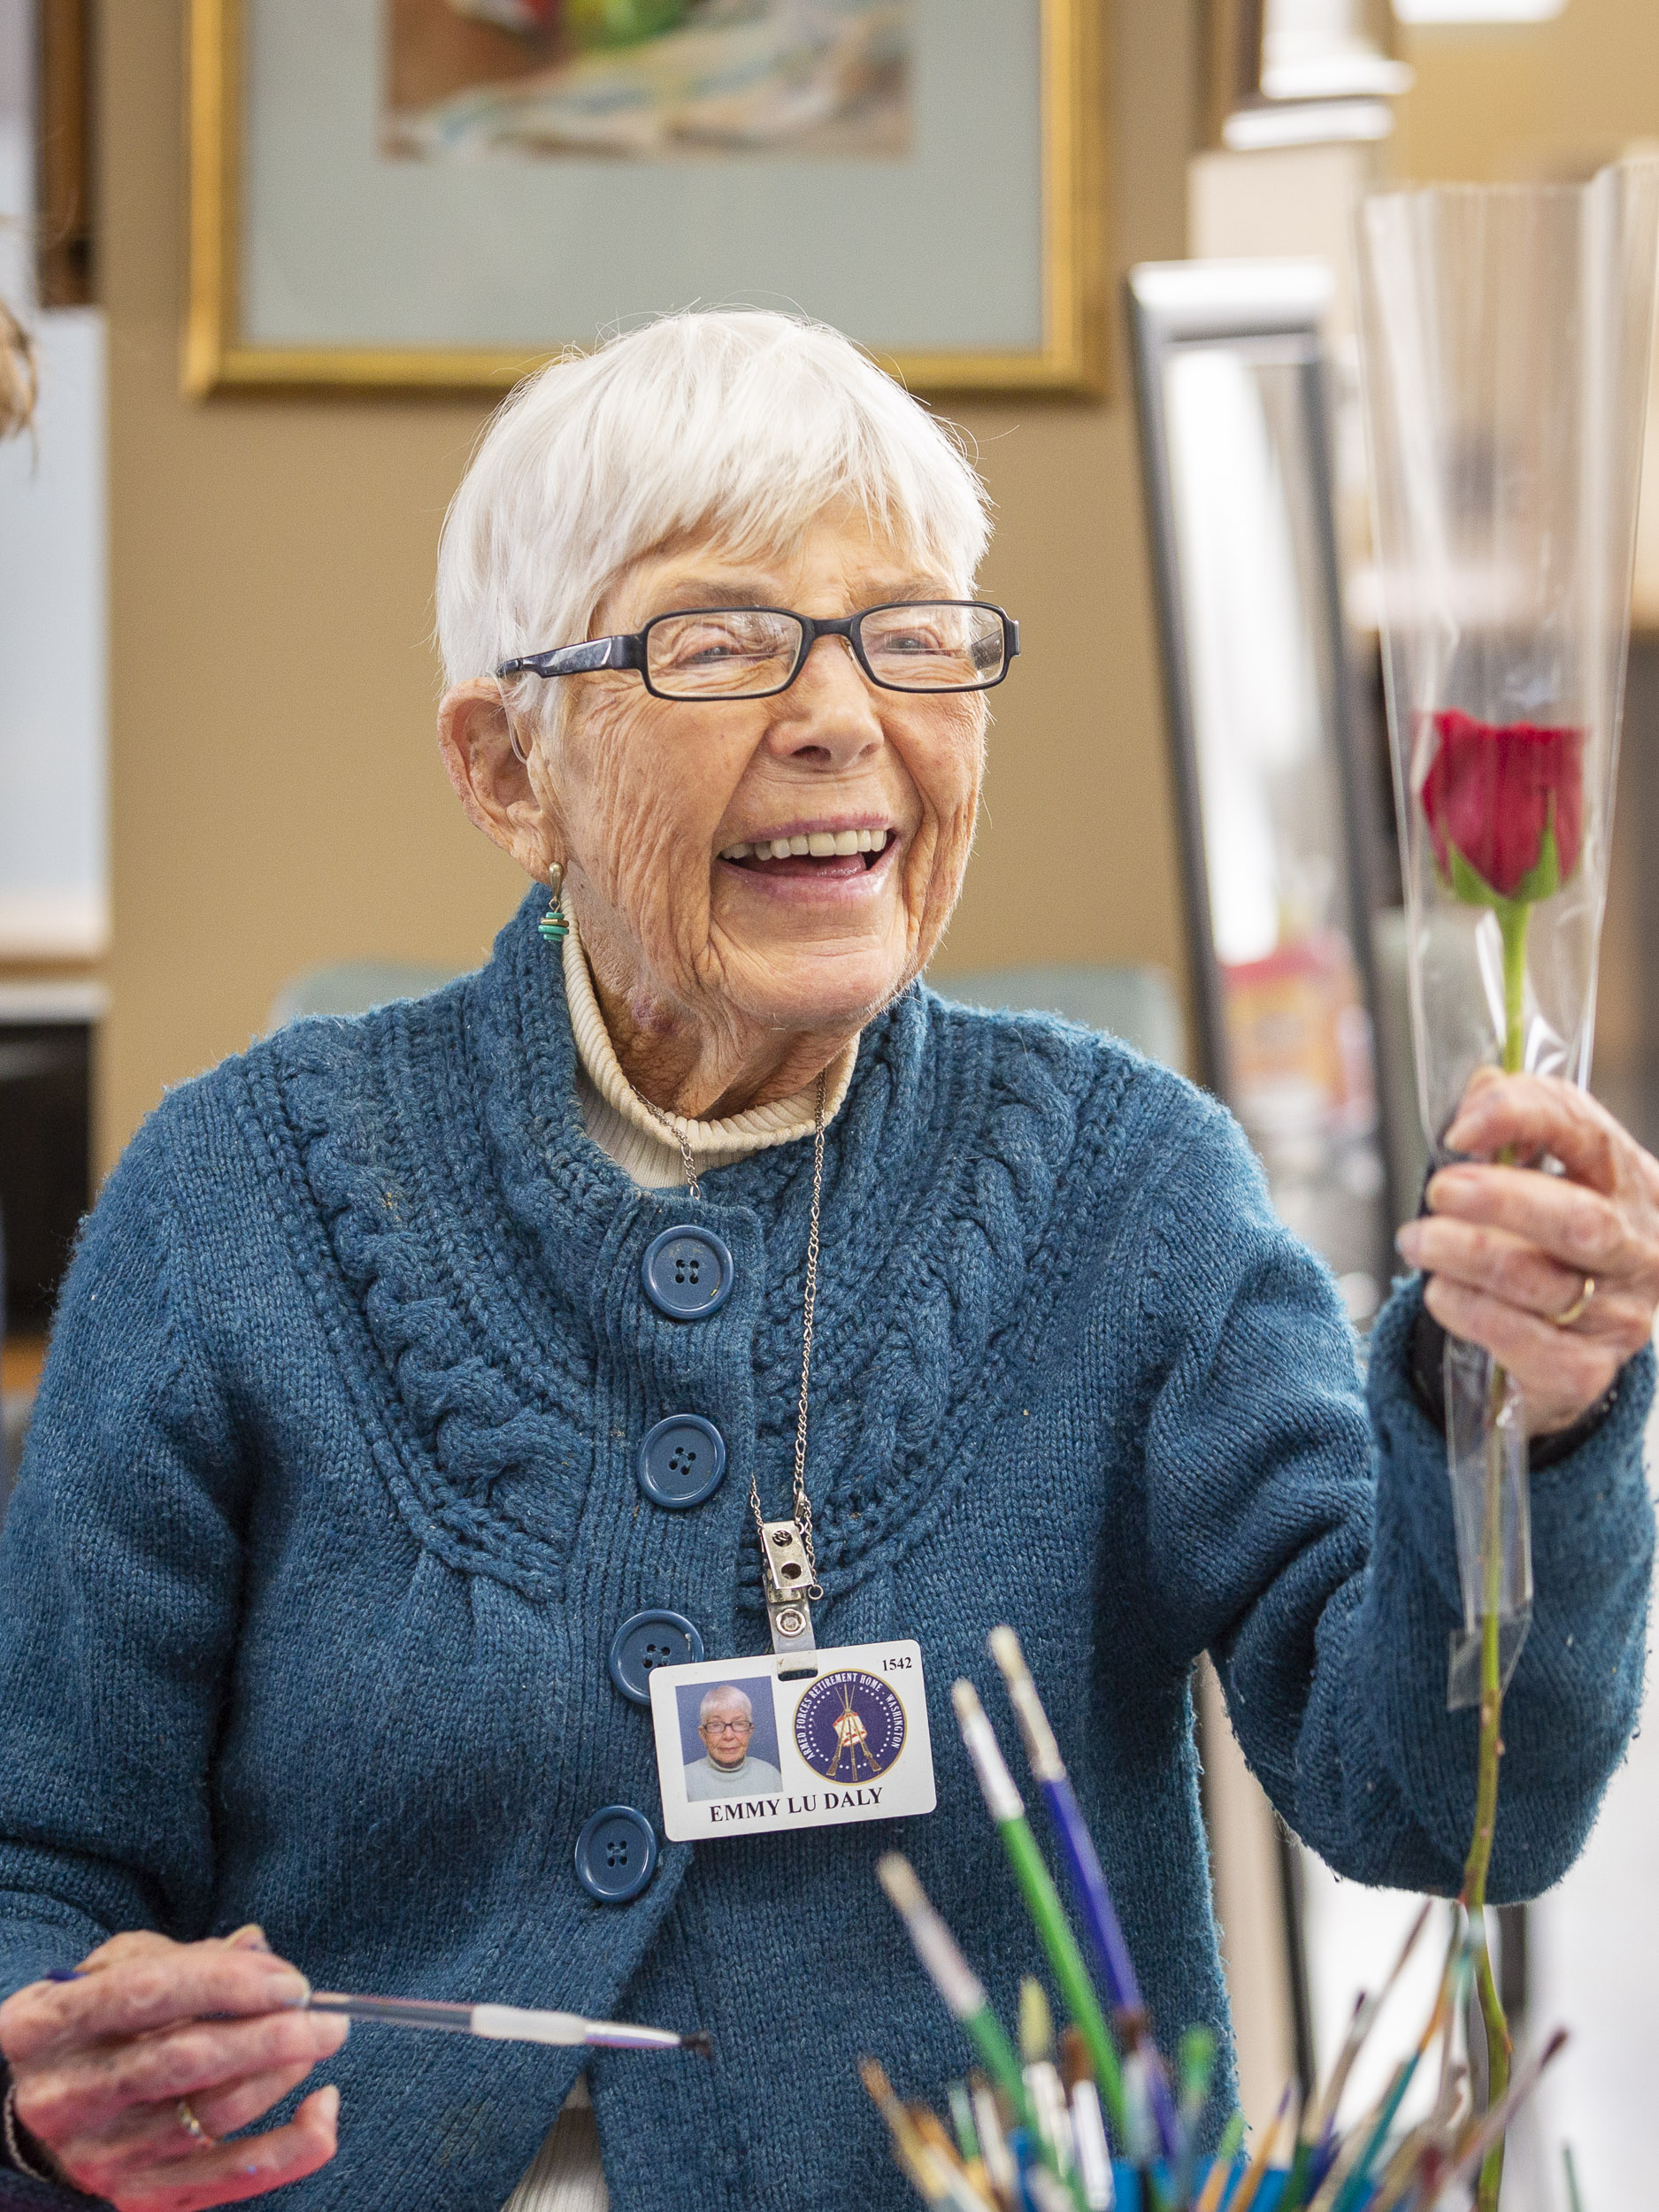 A military veteran receives a rose from 1-800-Flowers.com at the Armed Forces Retirement Home on Valentine's Day on Thursday, Feb. 14, 2019 in Washington, DC.